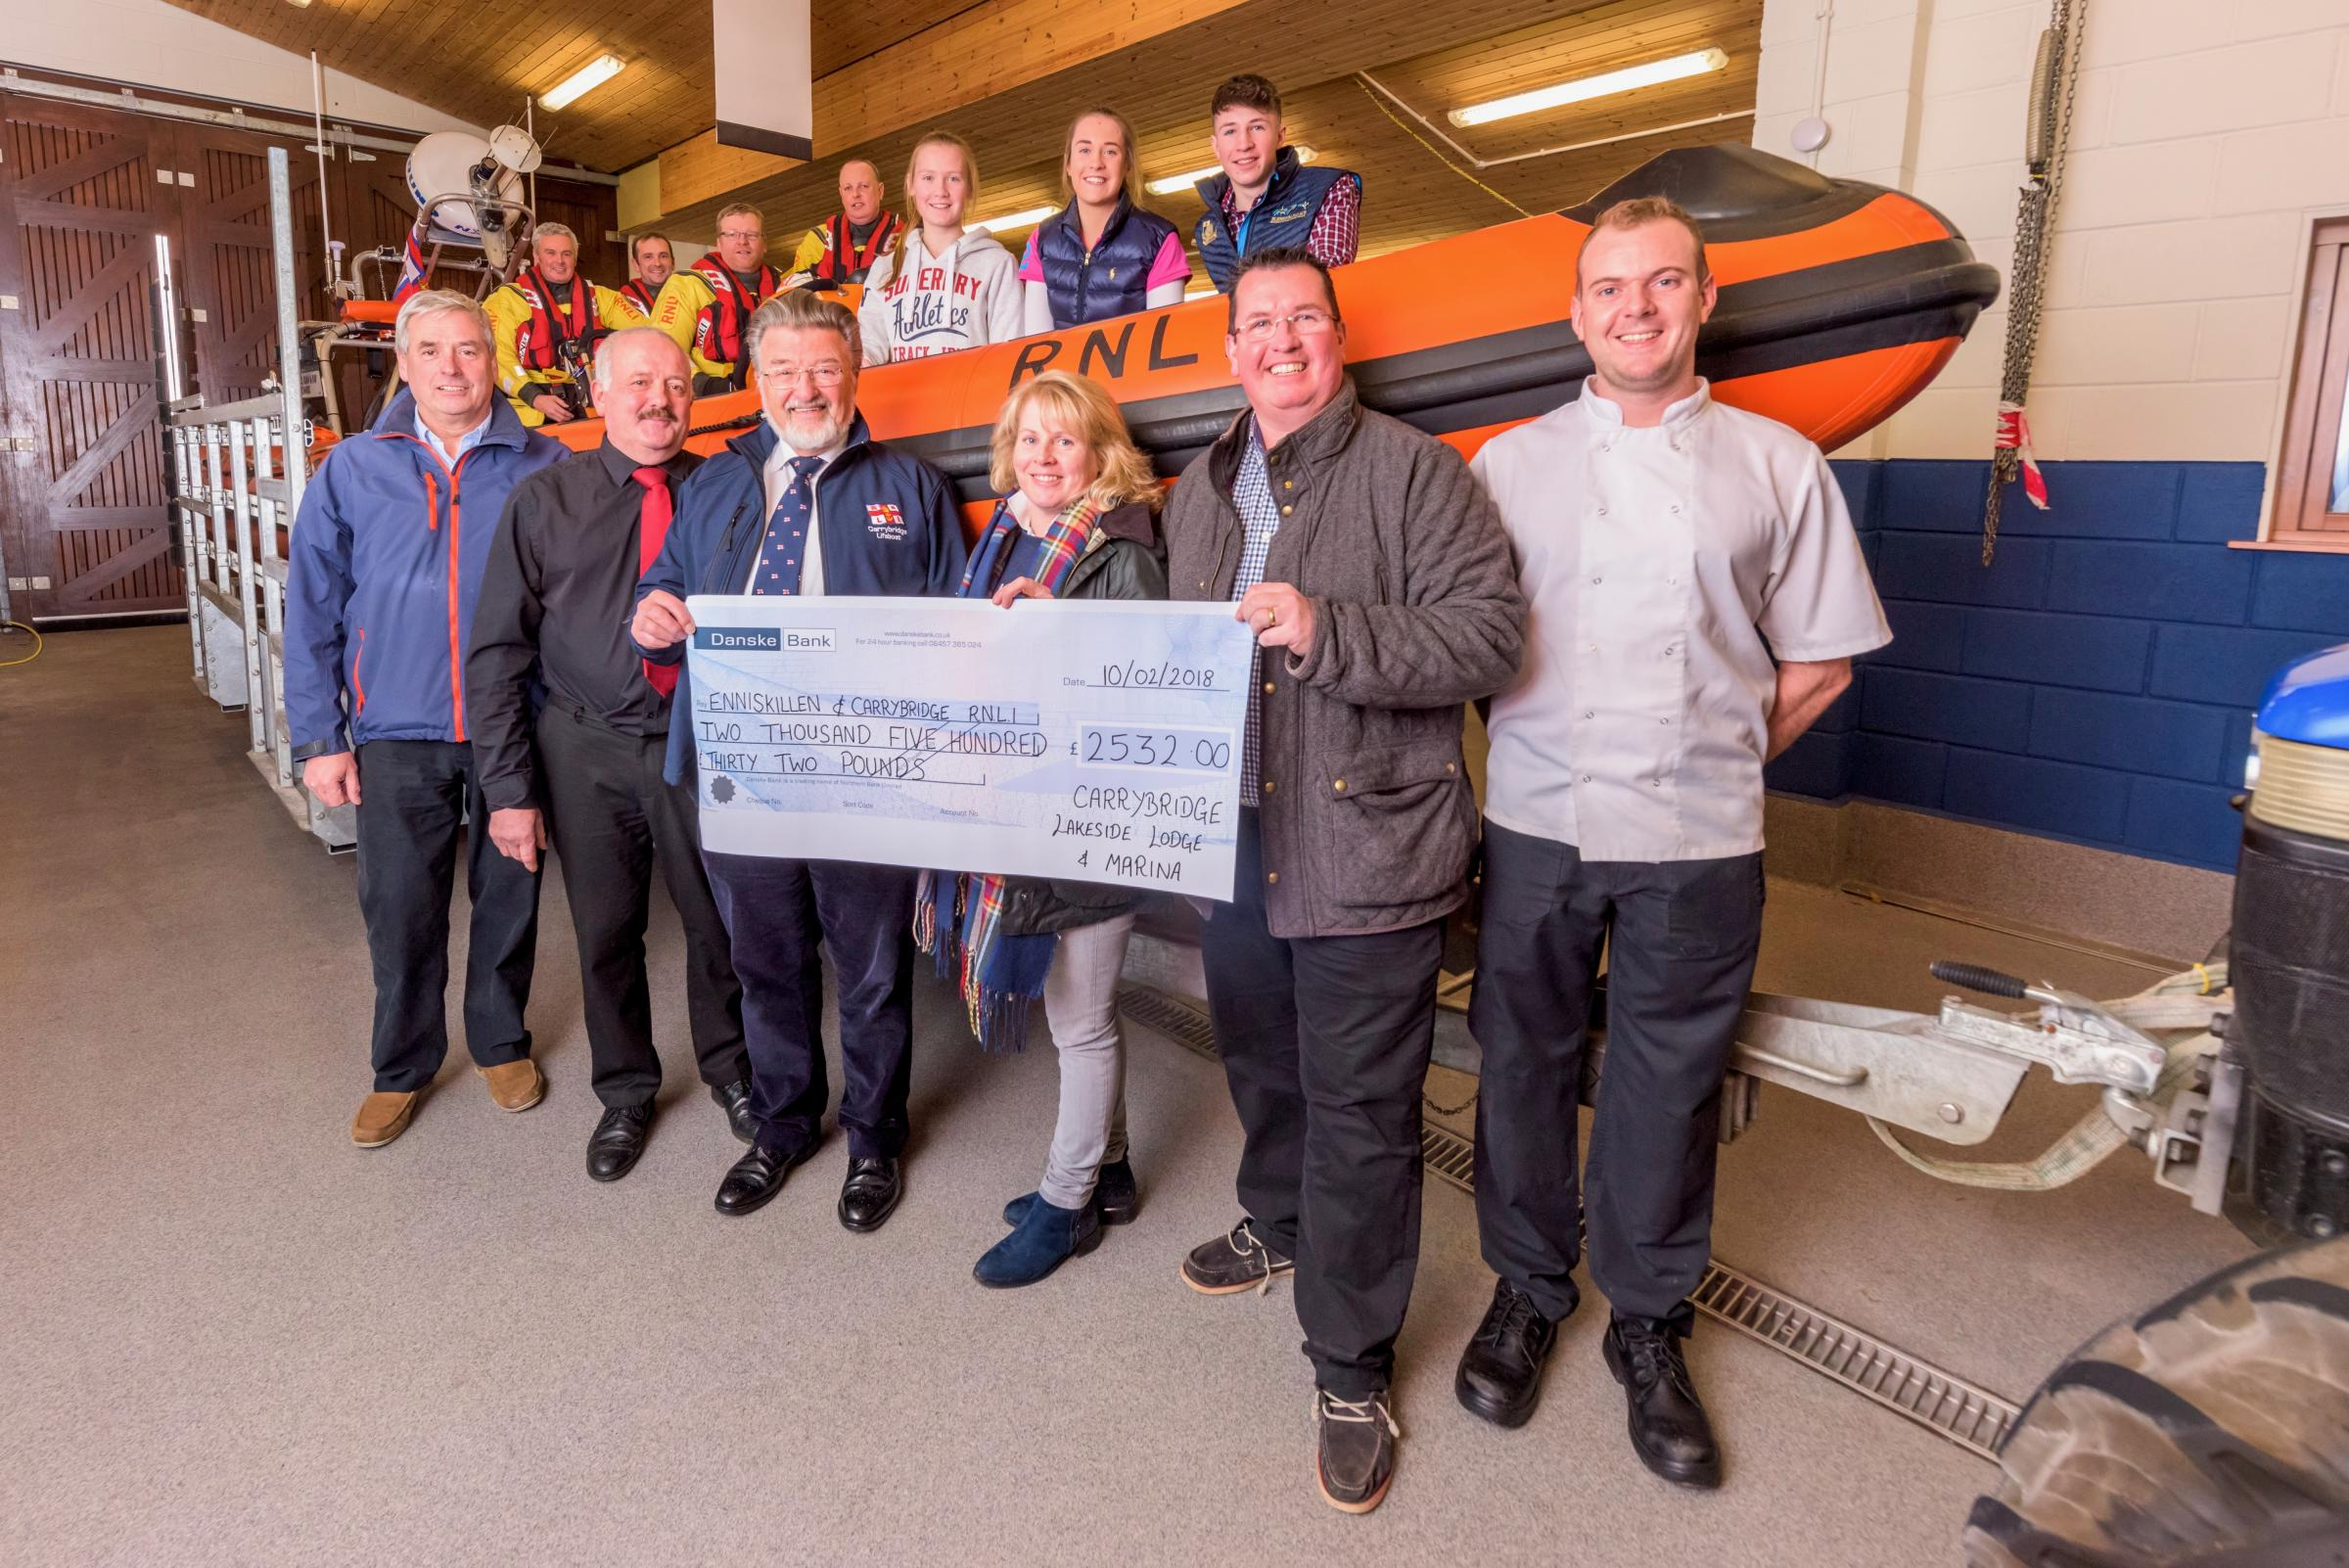 Lifeboat receives over £2,500